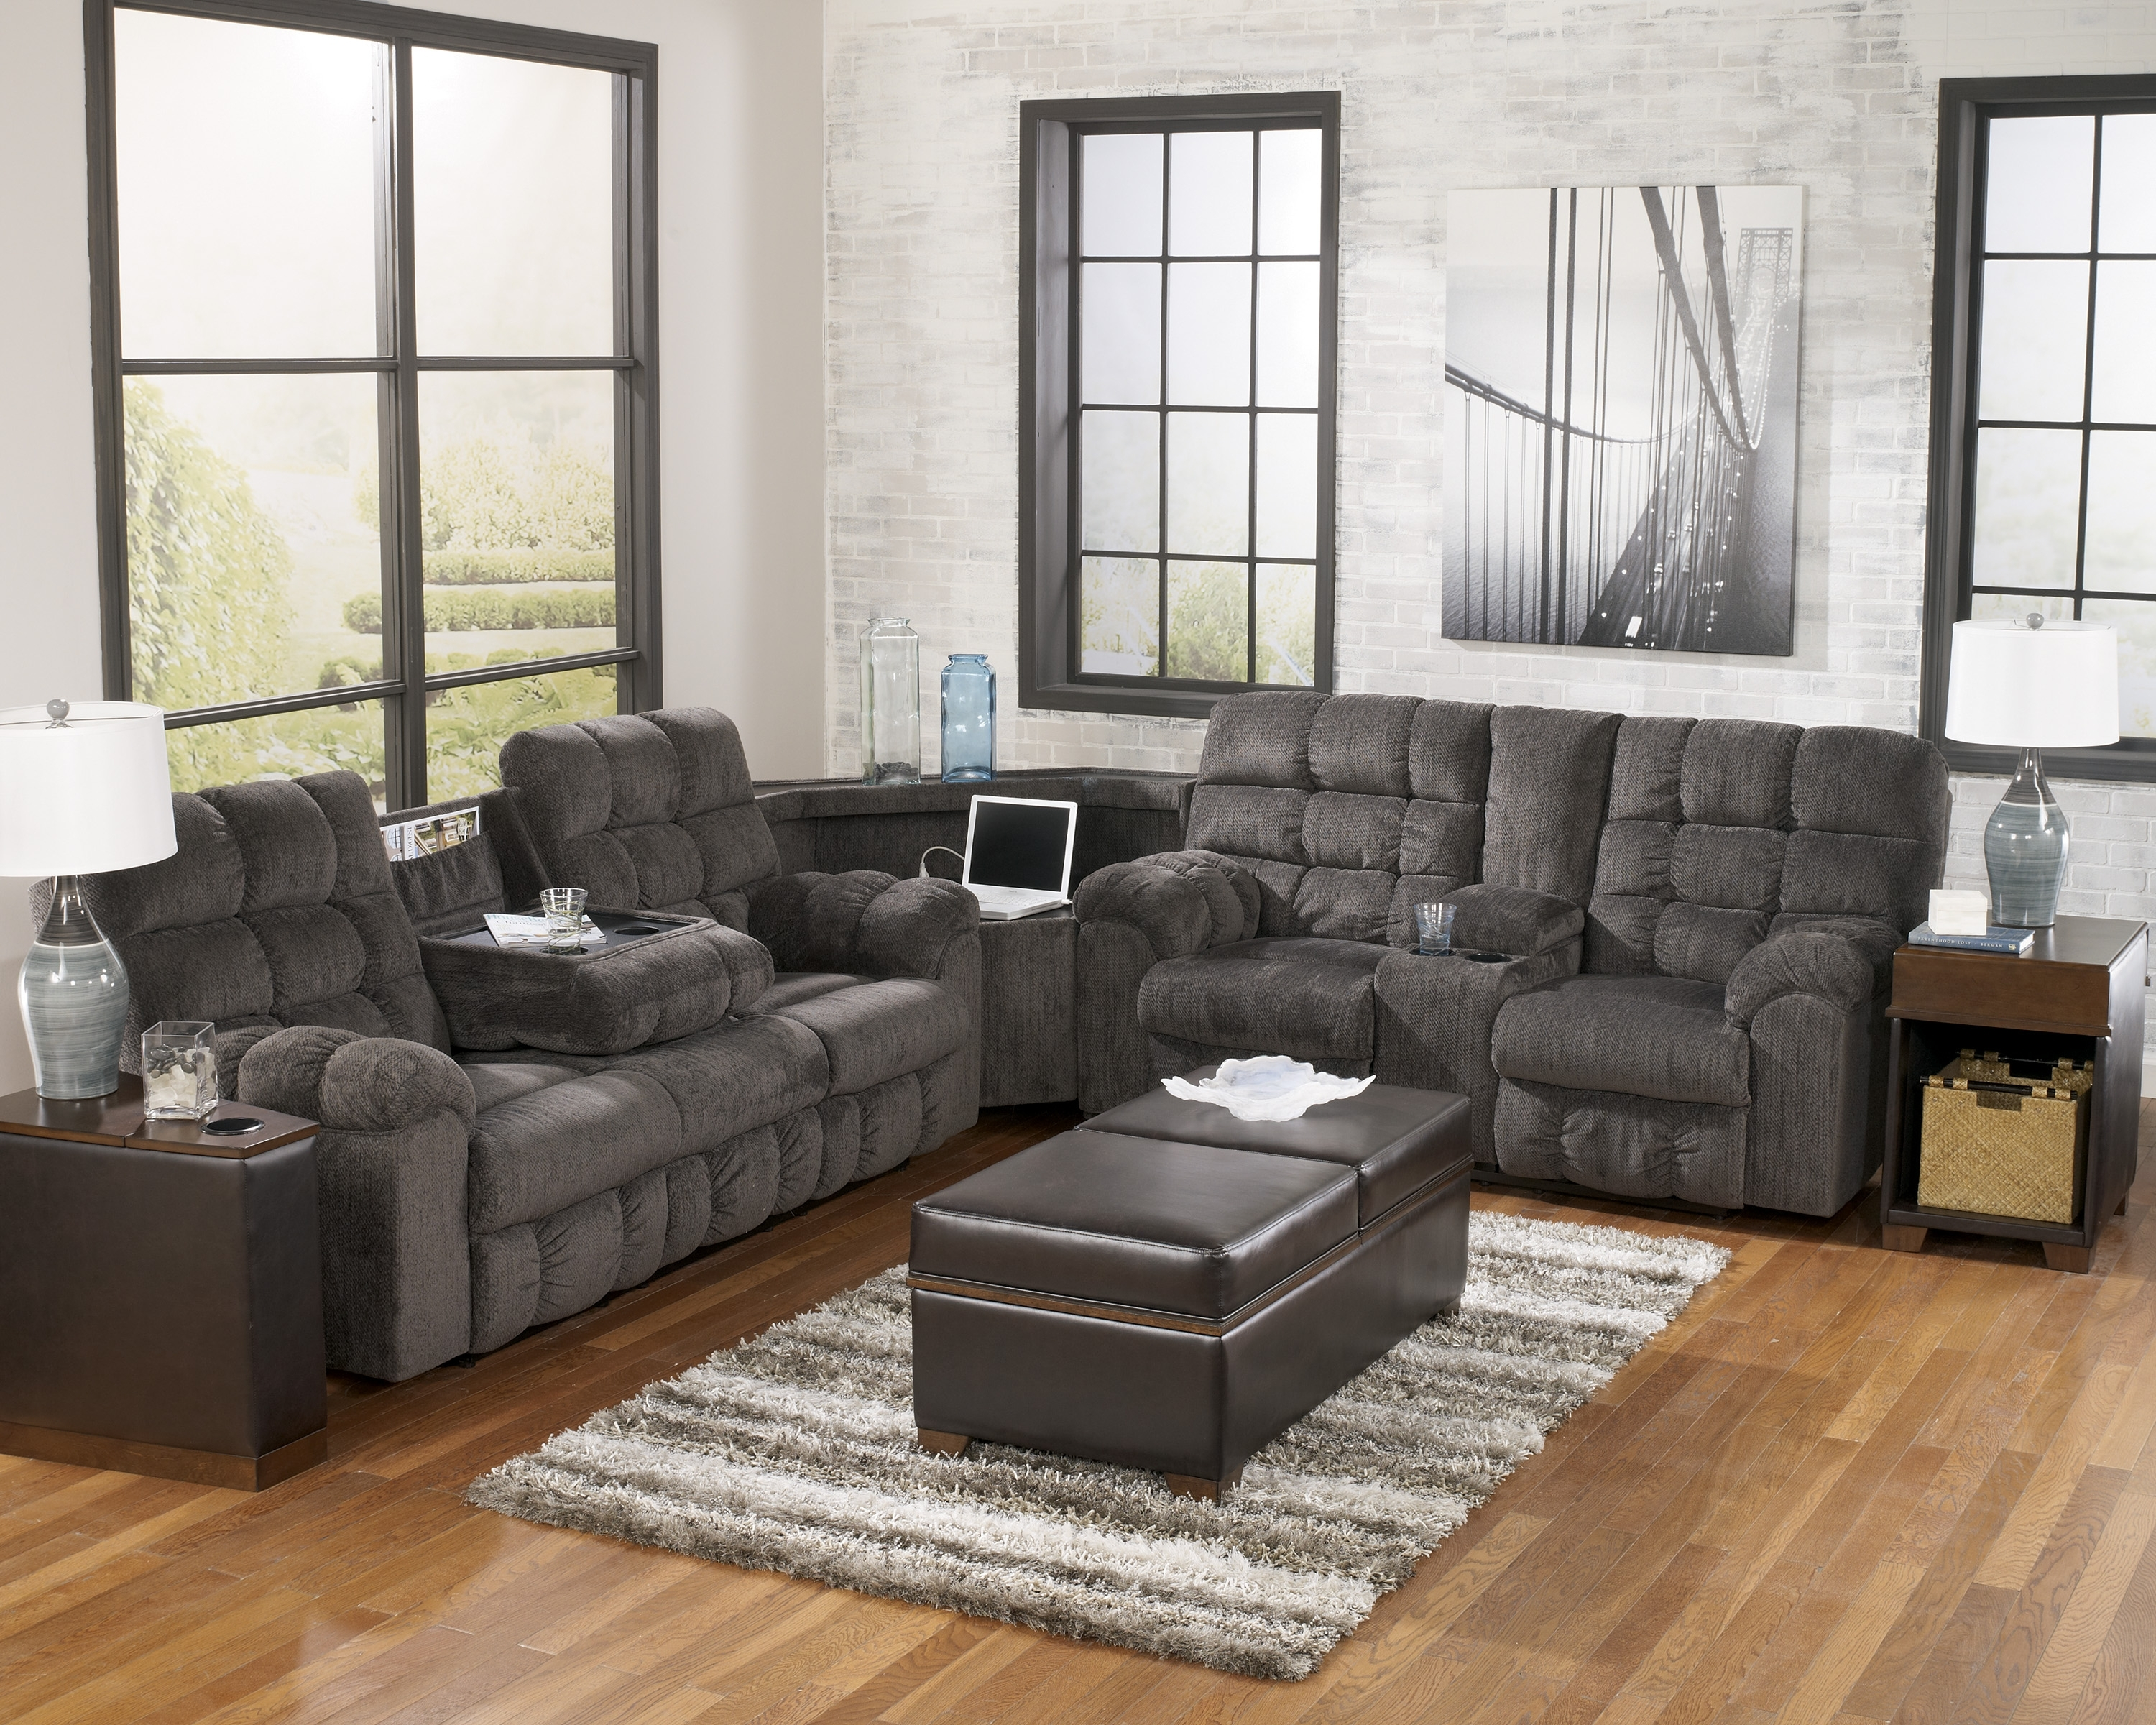 Amazing Ashley Sofas And Sectionals 67 With Additional Used Pertaining To Sears Sectional Sofas (View 9 of 10)